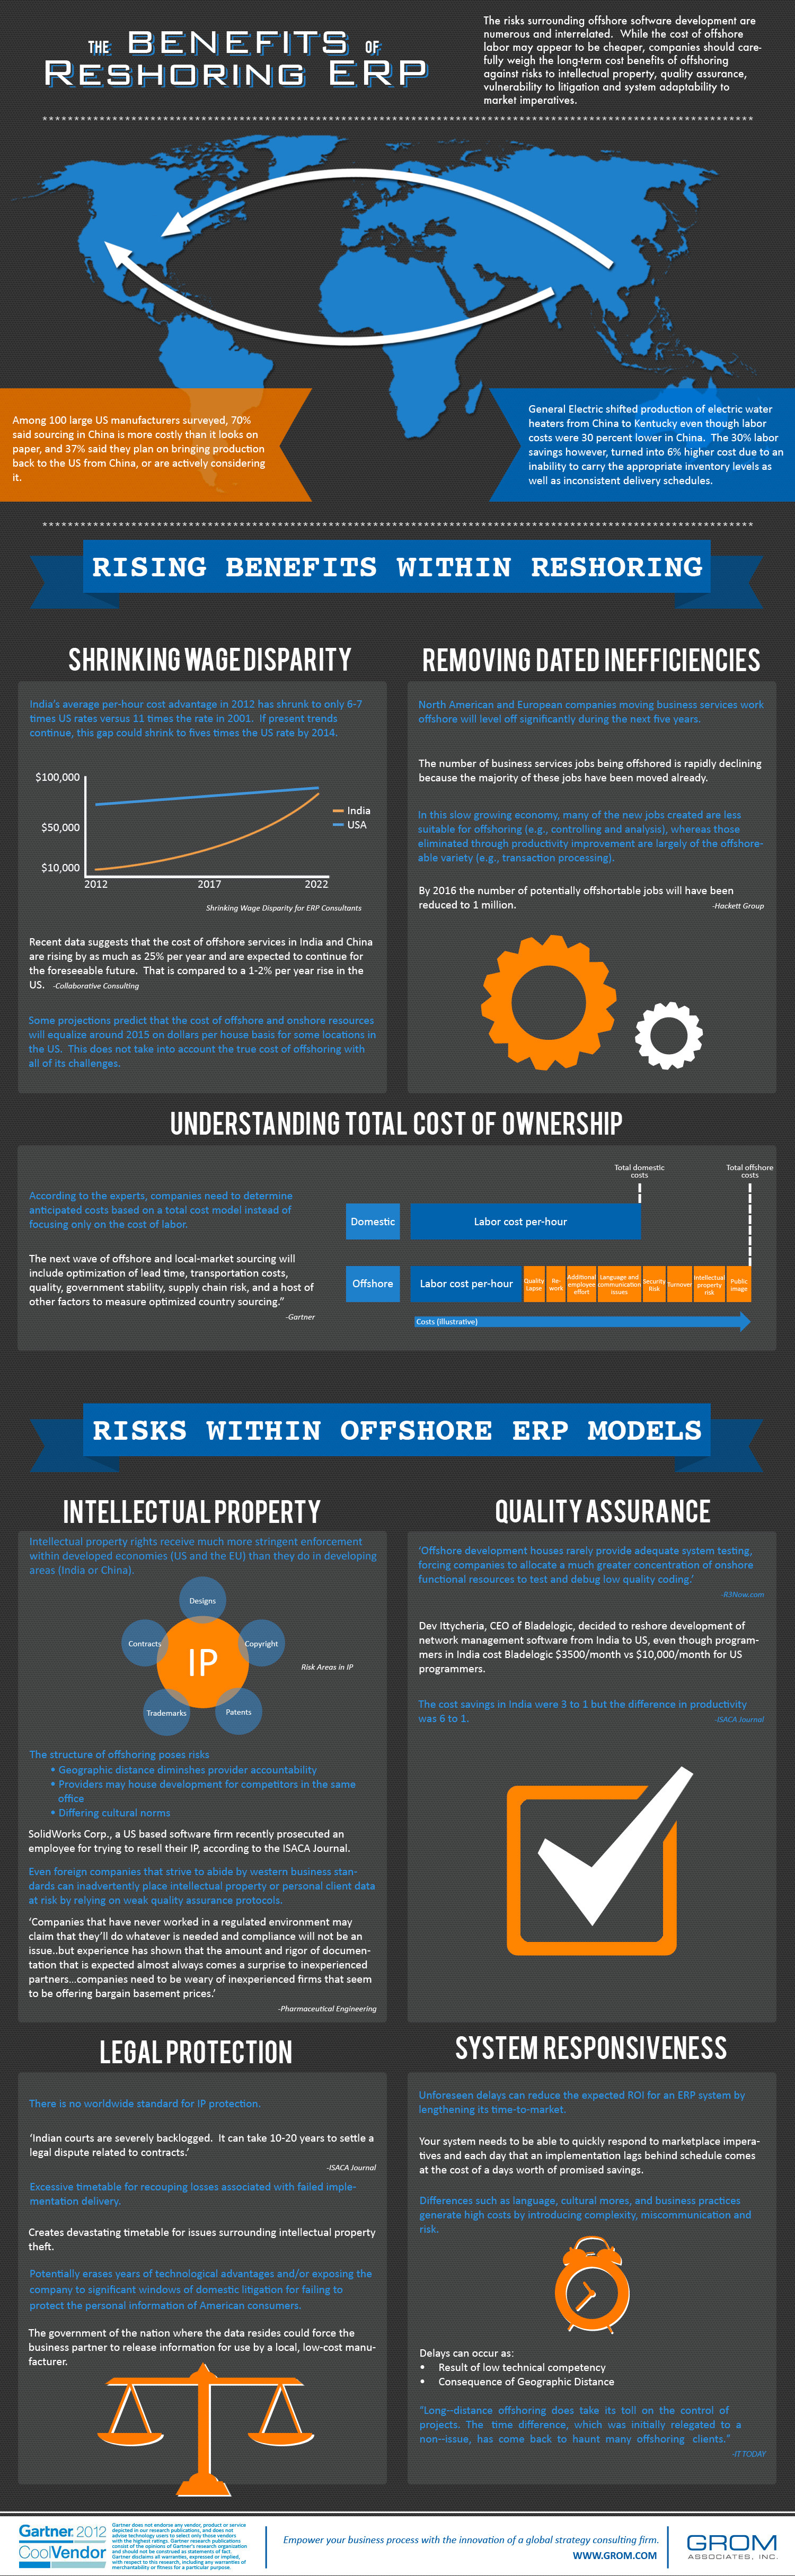 The Benefits of Reshoring ERP Infographic